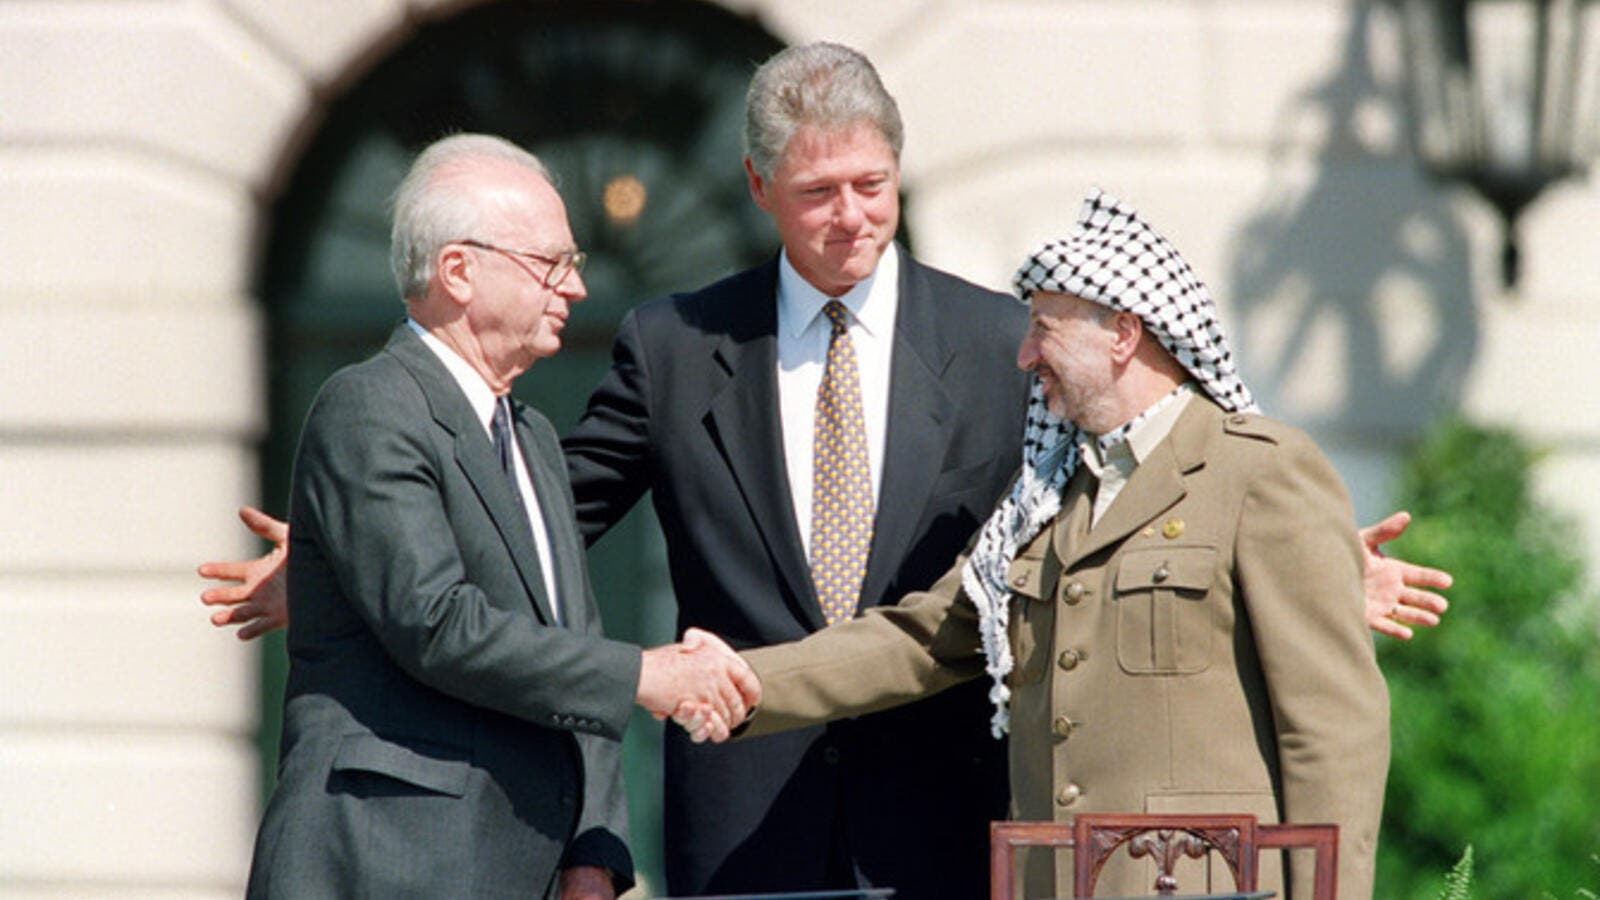 US President Bill Clinton stands between PLO leader Yasser Arafat and Israeli Prime Minister Yitzhak Rabin as they shake hands for the first time, on Sept. 13, 1993 (AFP)